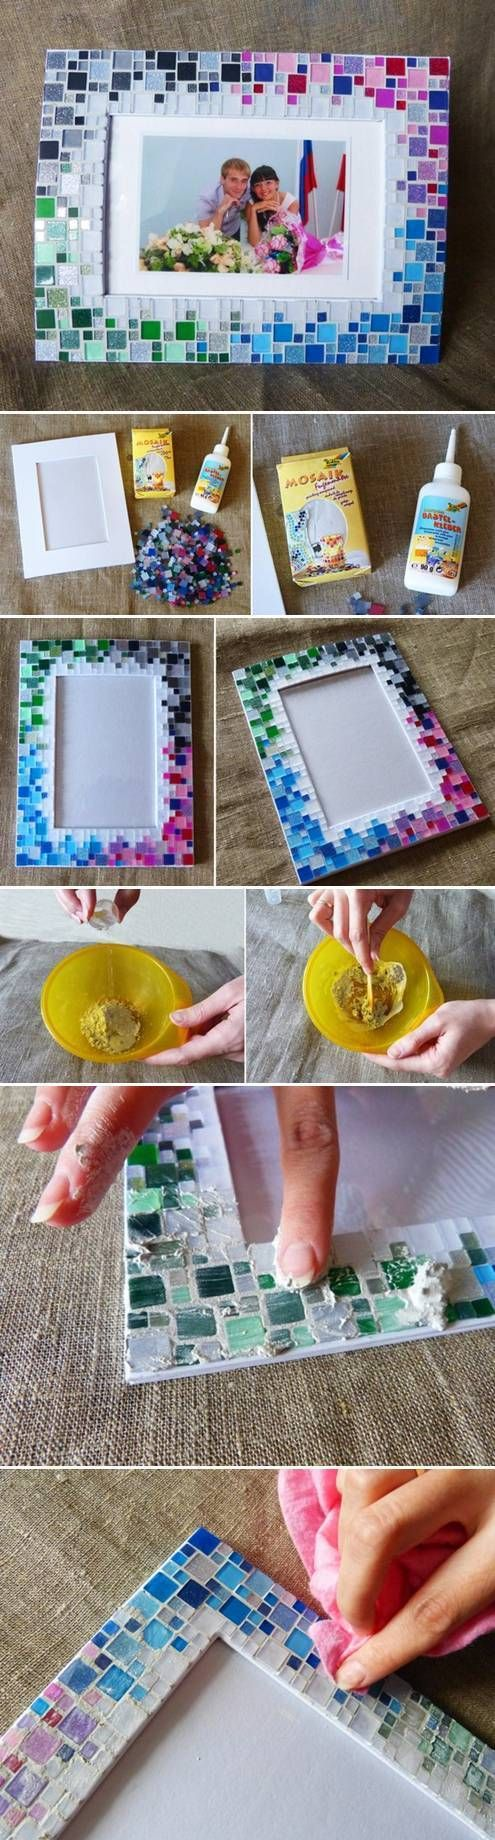 DIY Colorful Mosaic Picture Frame | Buzz + Inspired